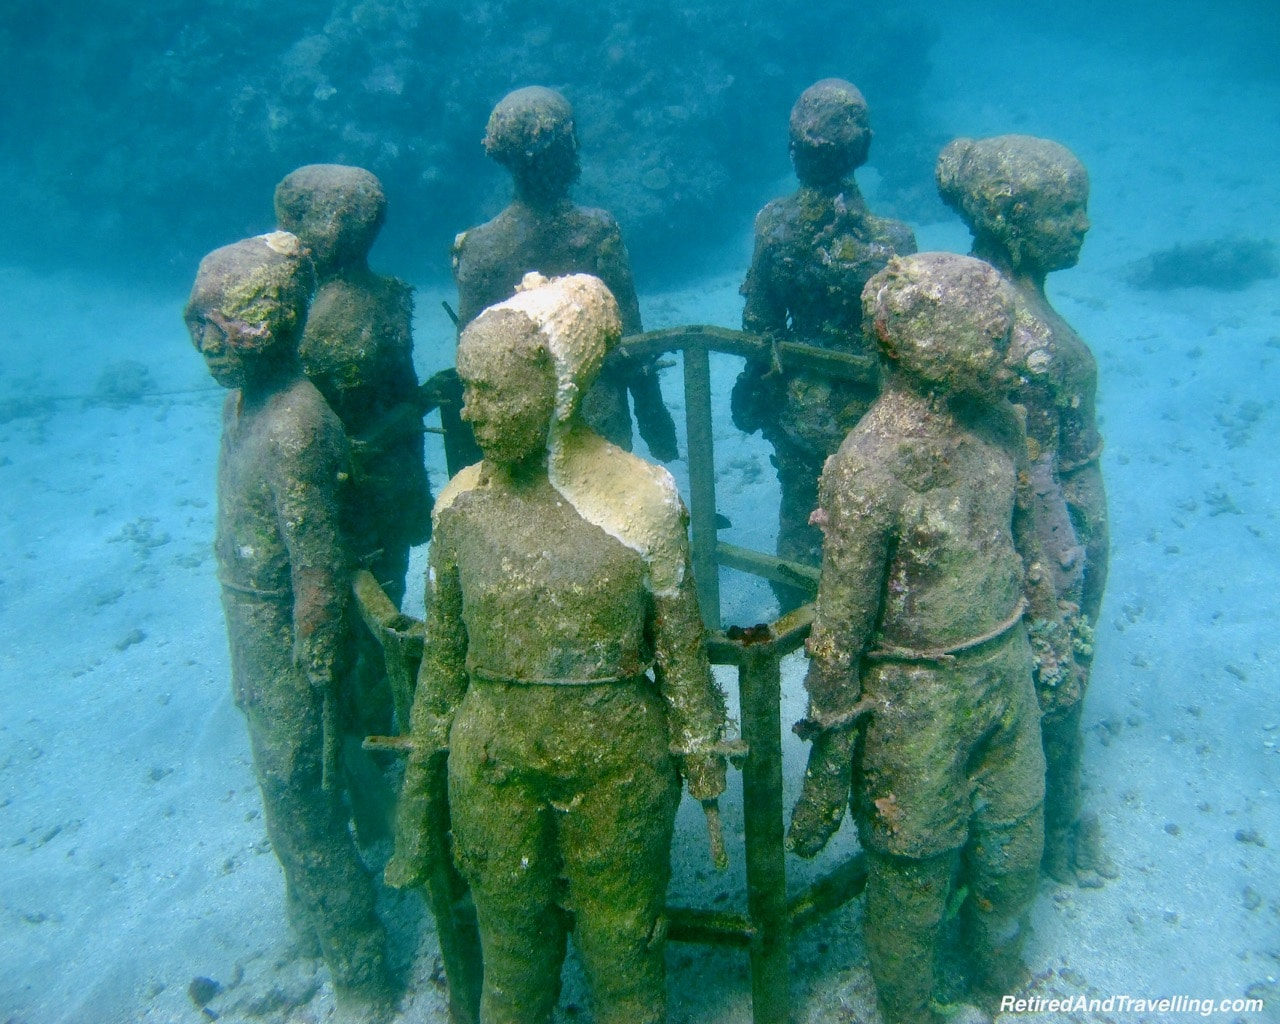 Circle of Children Underwater Sculptures With Grenada Seafaris - Explore The Underwater Sculptures in Grenada.jpg